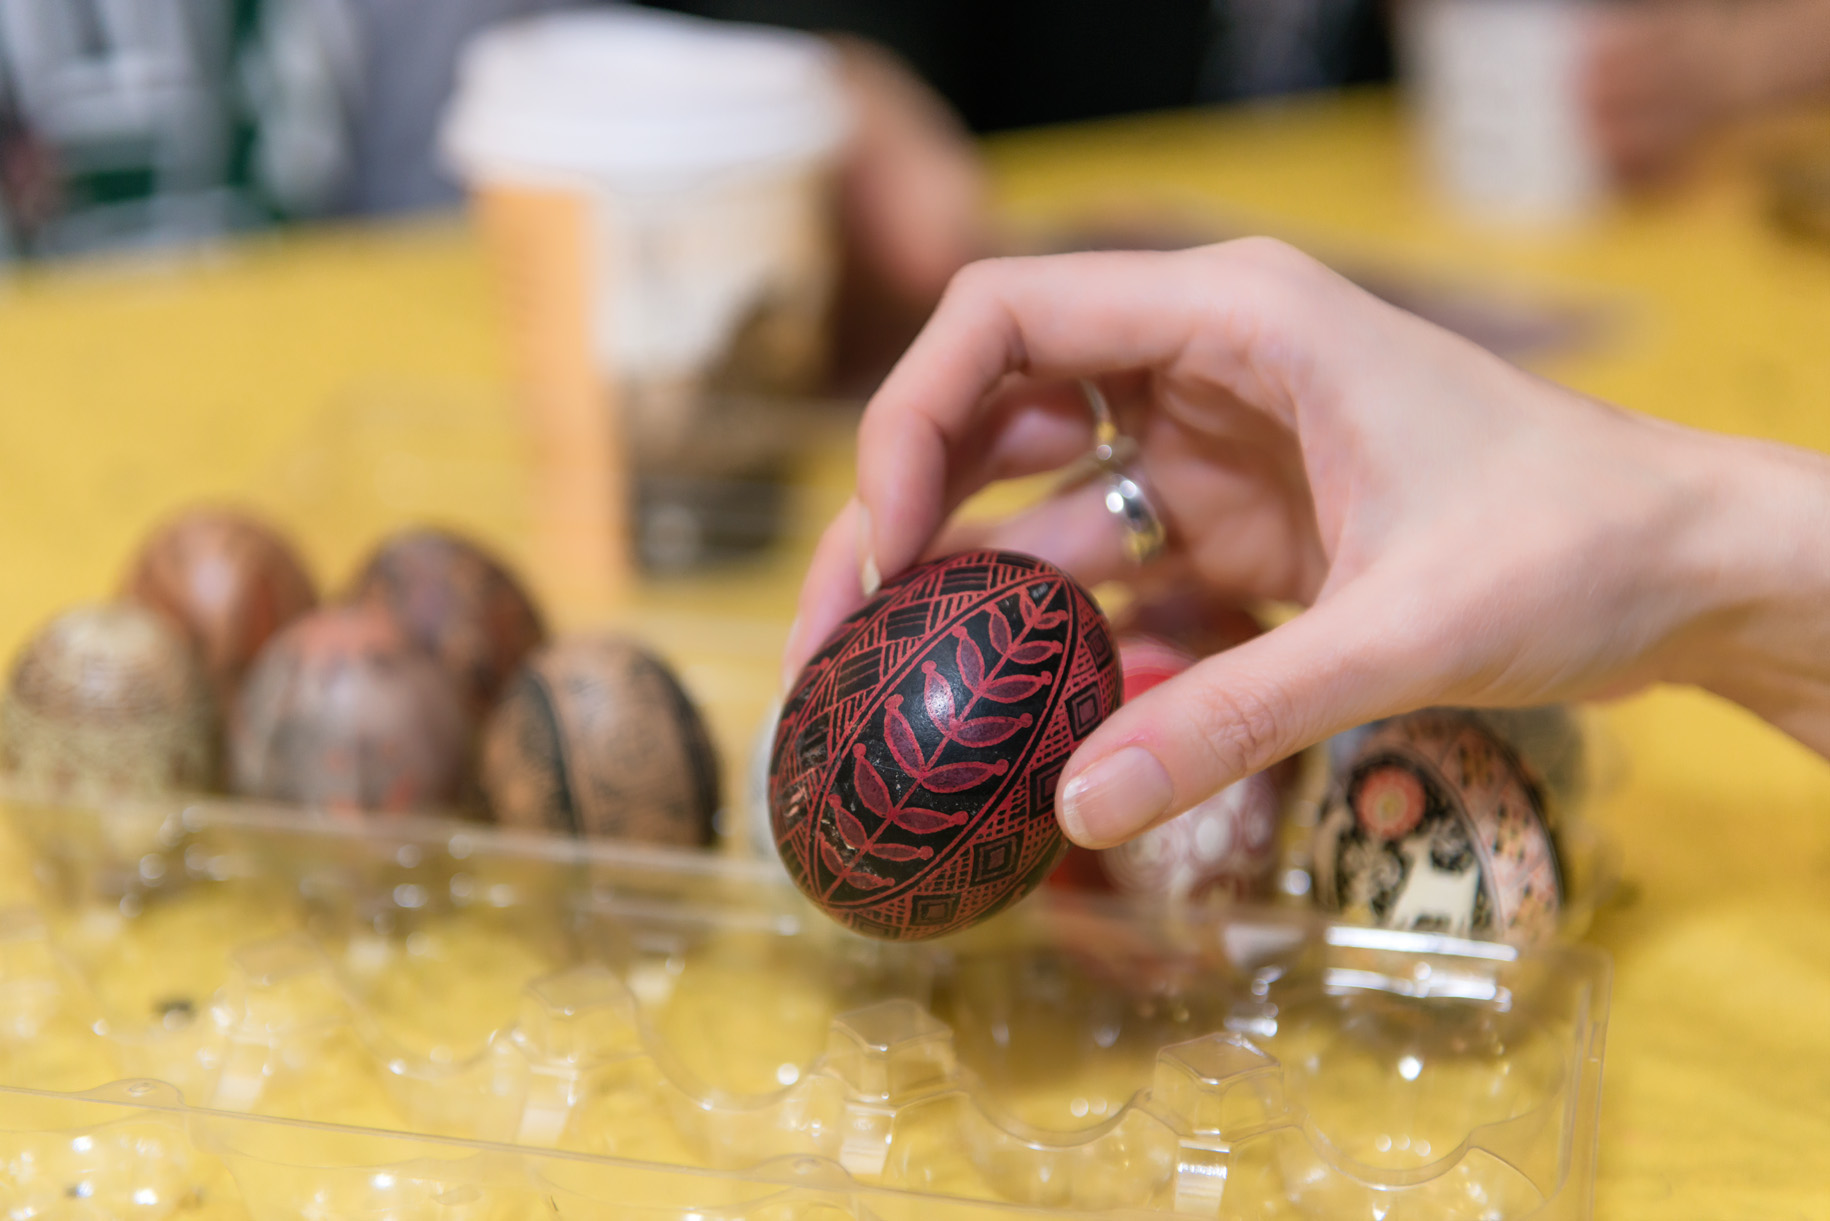 hand holding pysanky egg